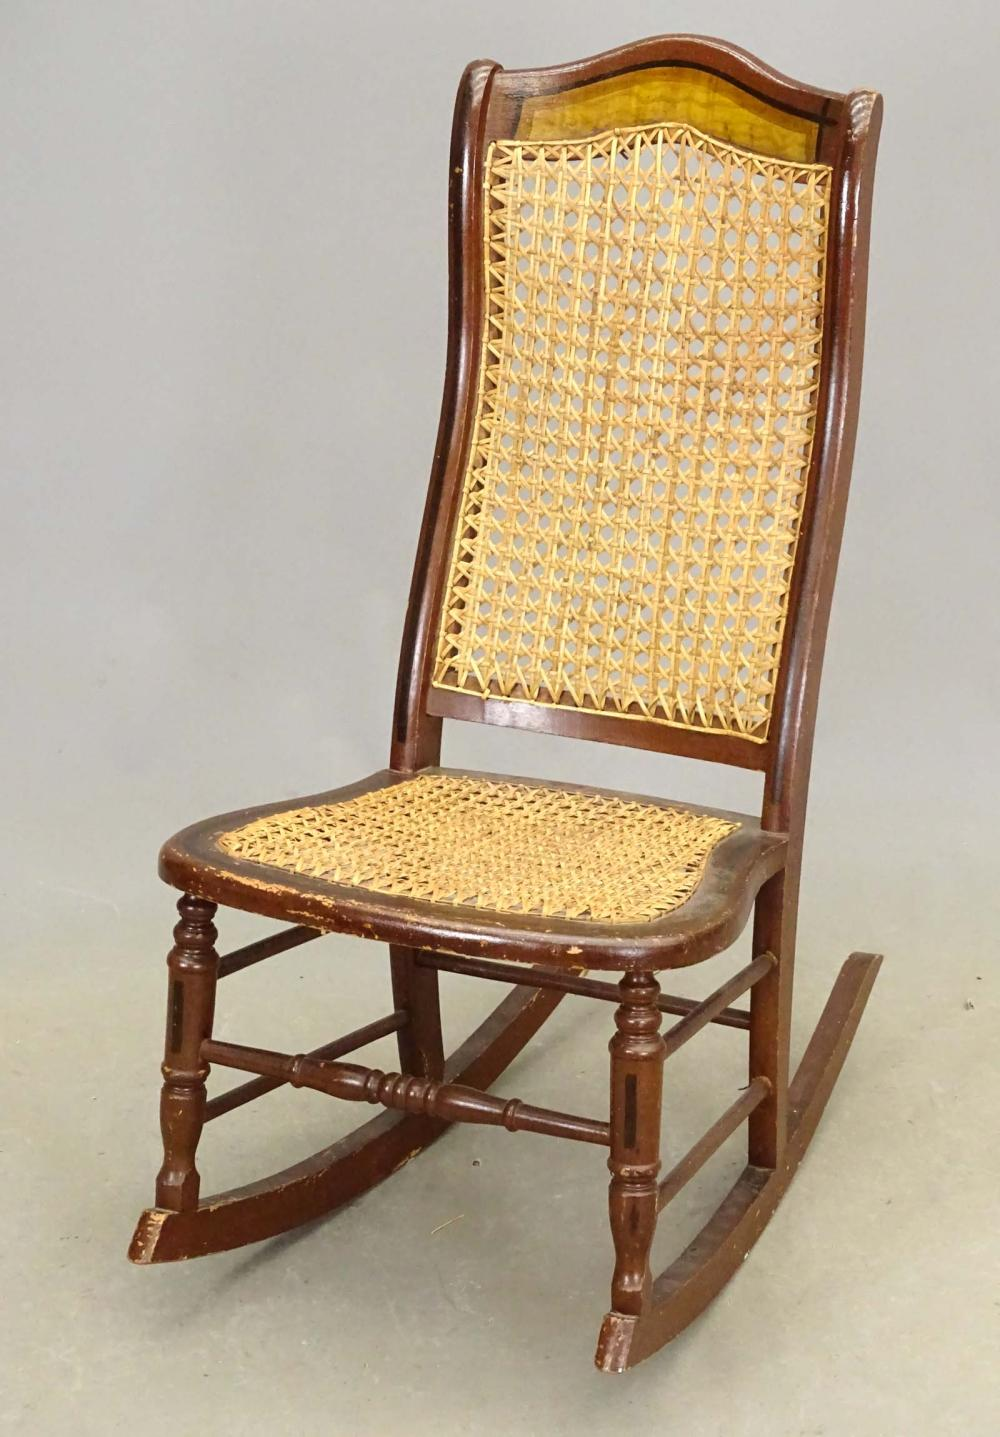 Cane Seat Rocking Chair